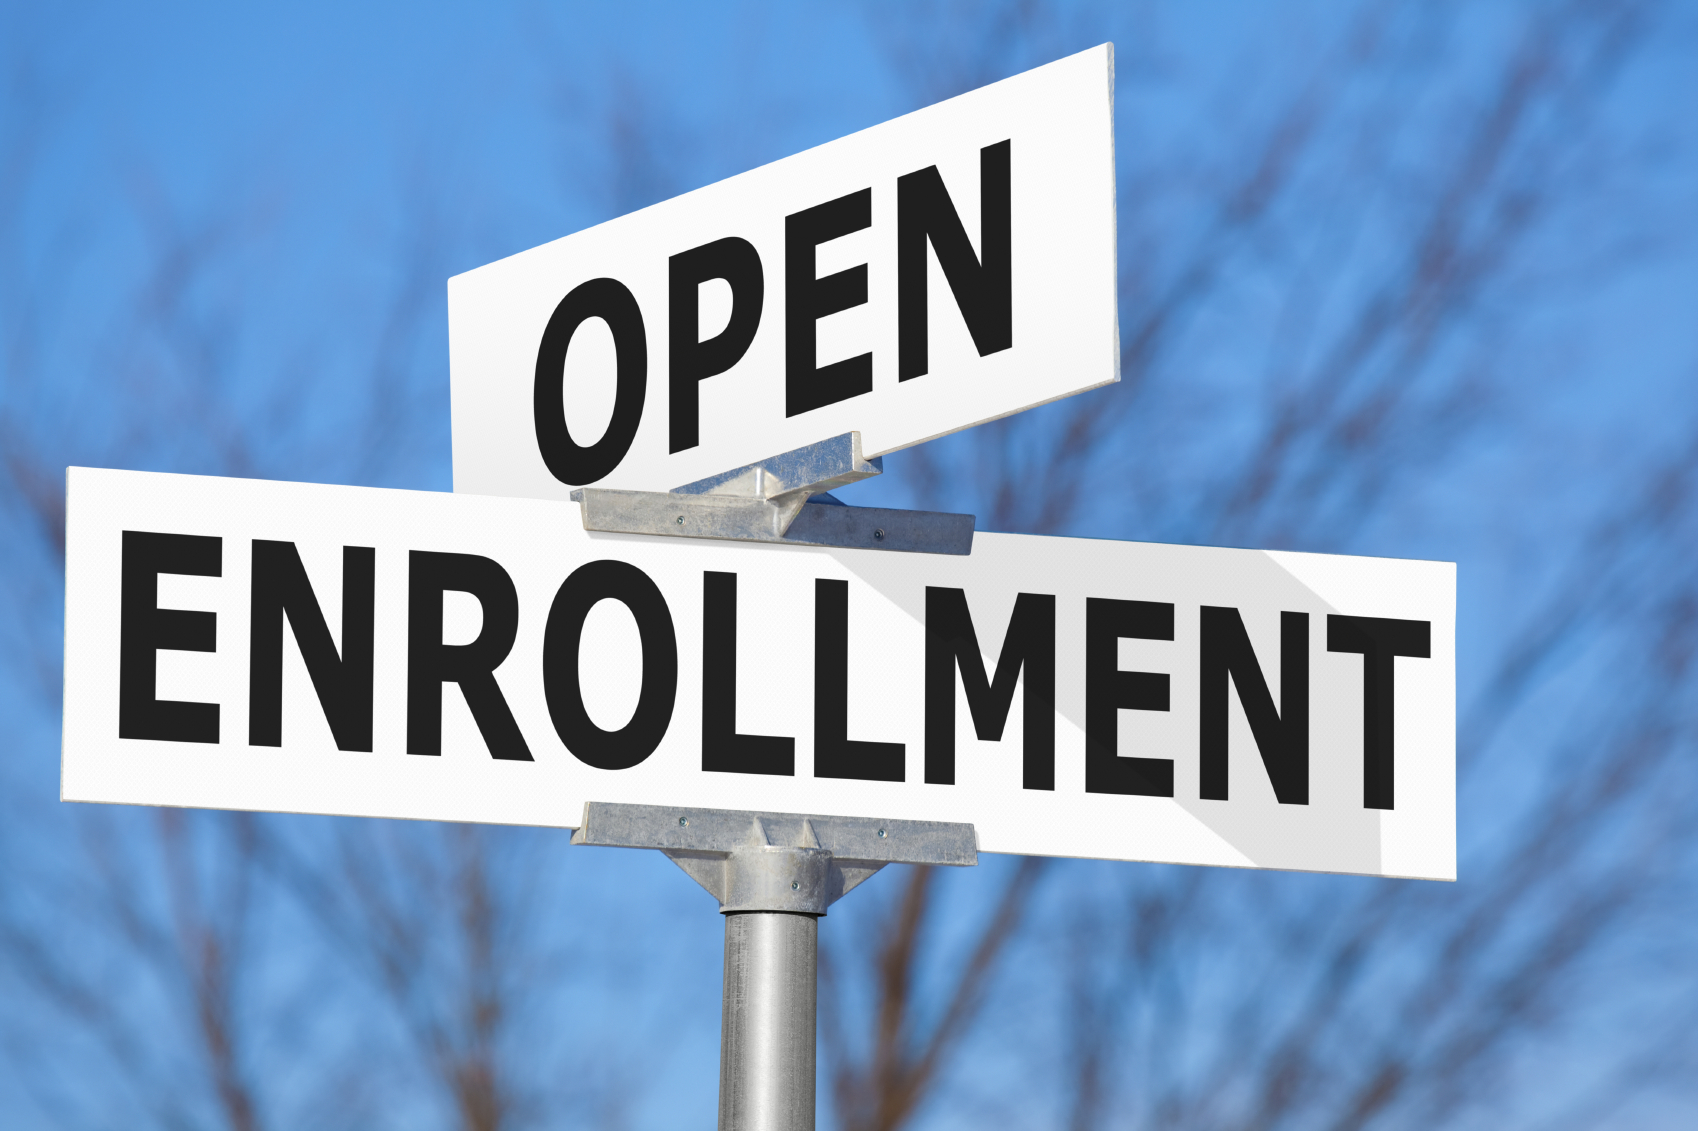 Intersecting street sign that says Open Enrollment